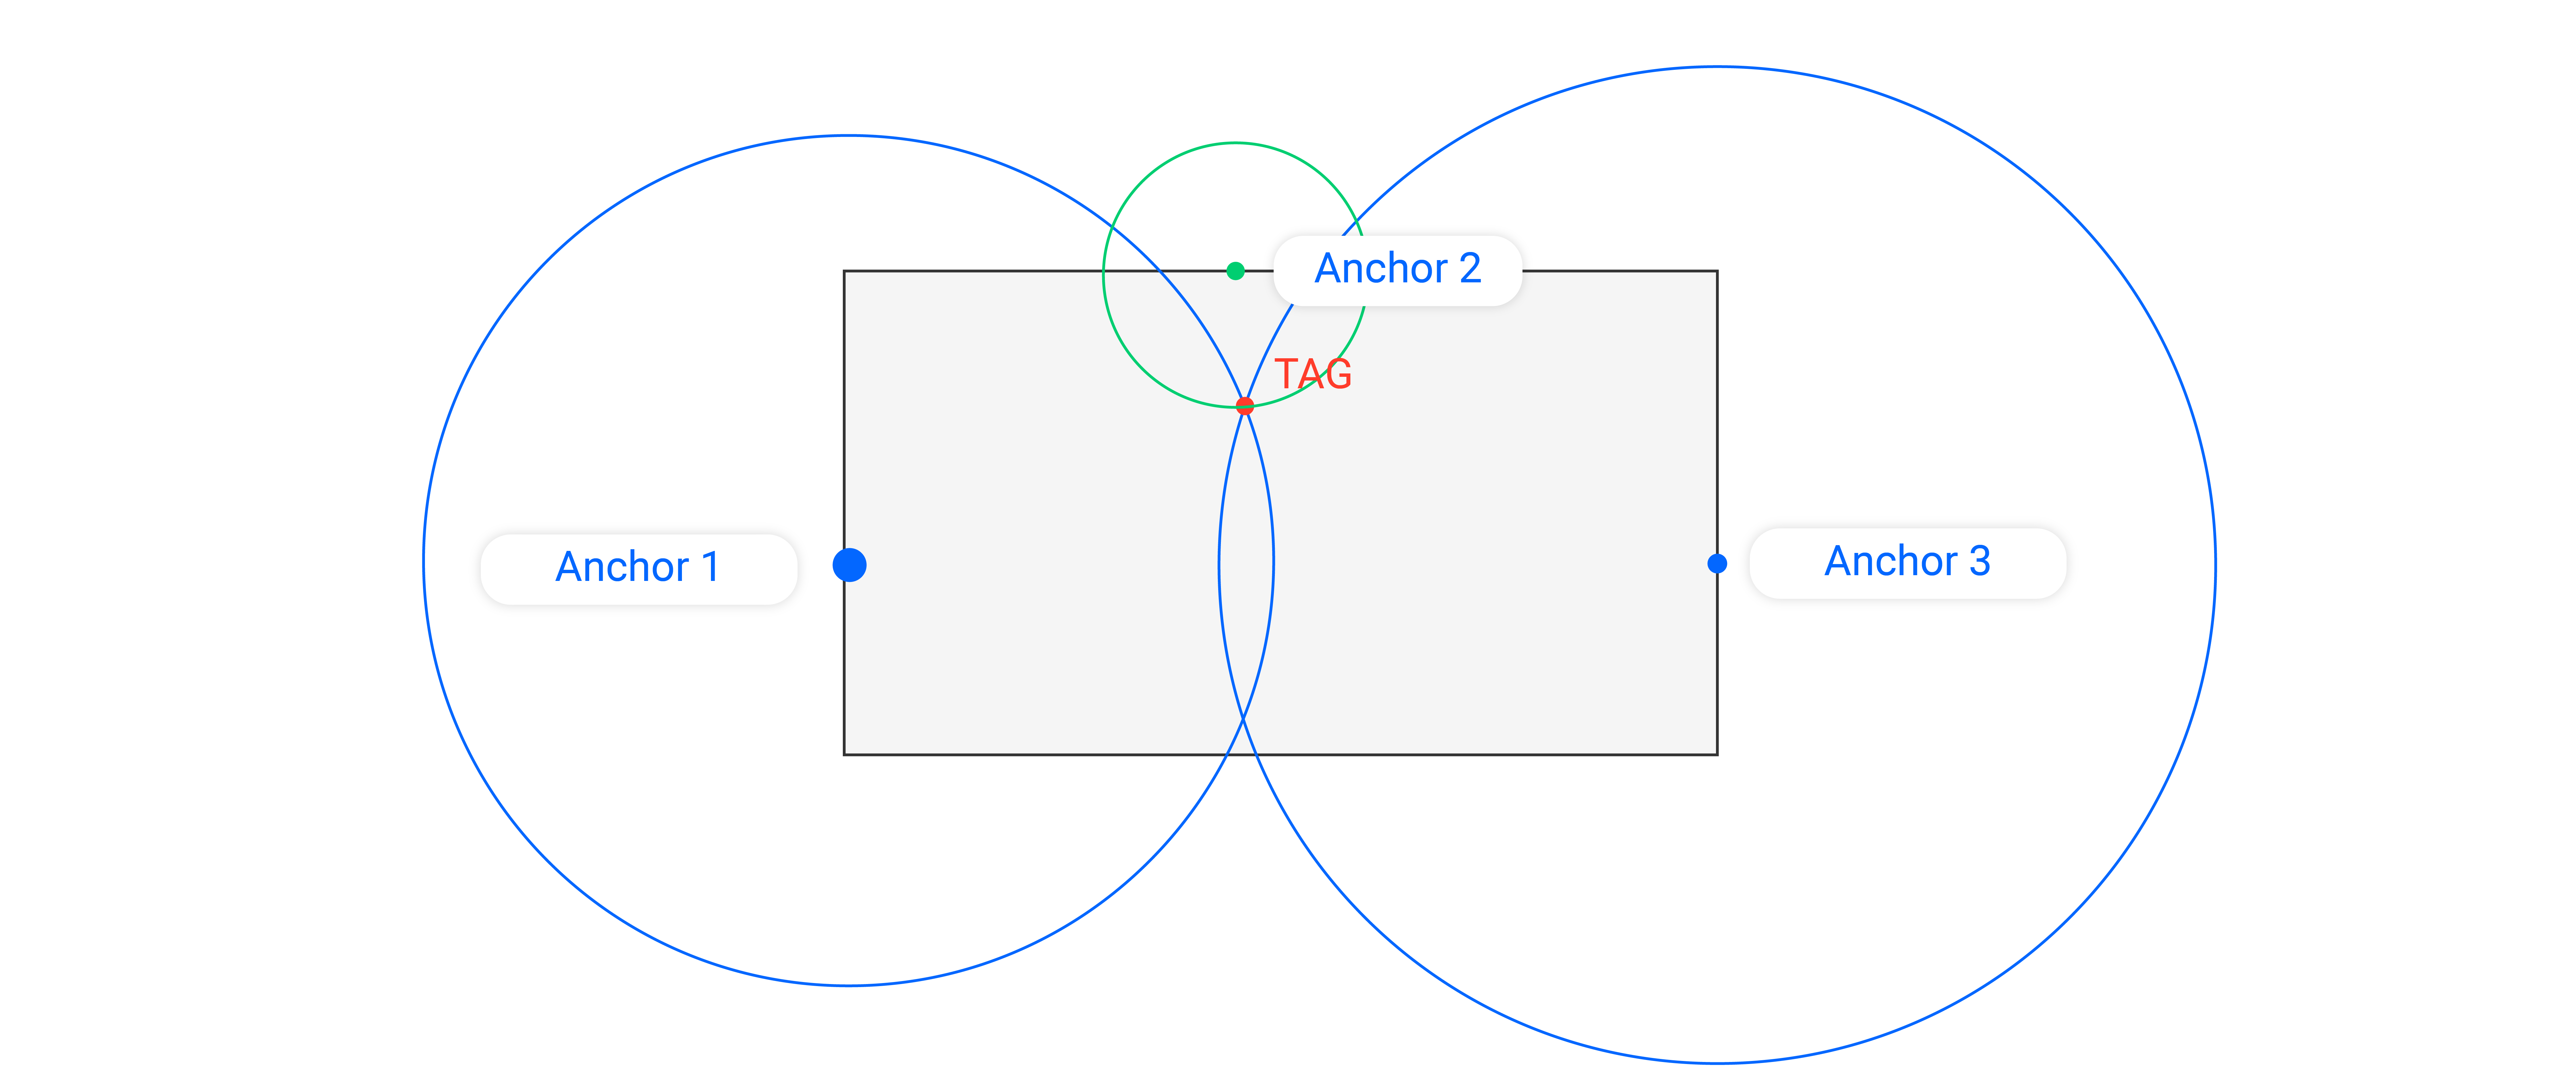 graph on the trilateration: the basic concept is to find the intersection of the three circles defined by the three distances between the anchors and the Tag